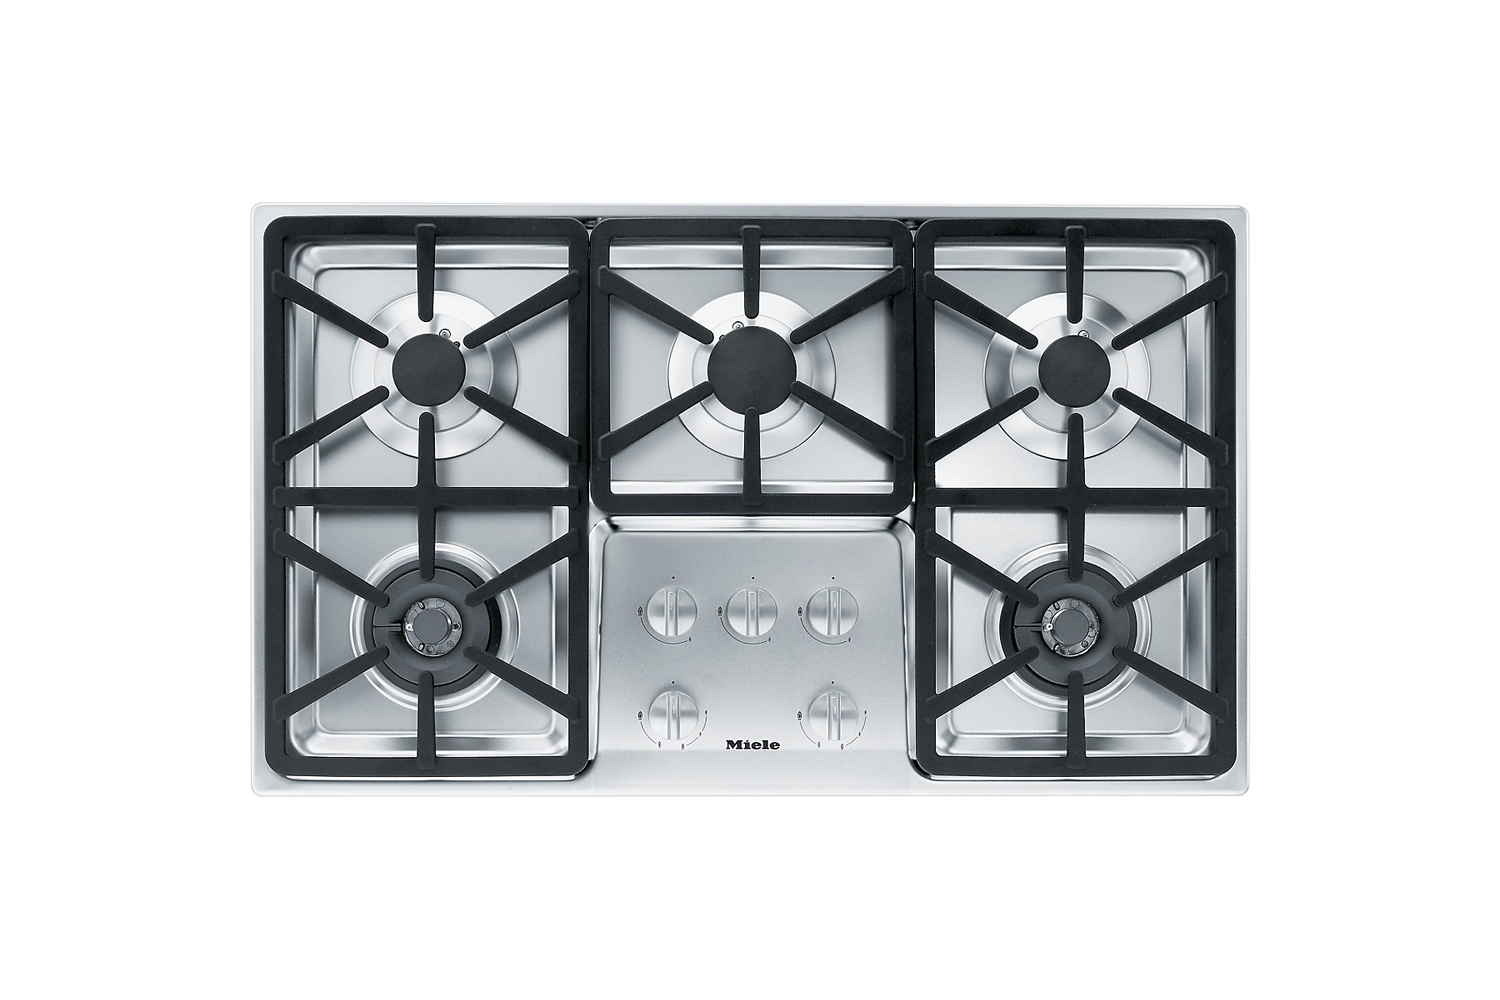 the miele 36 inch stainless gas cooktop (km3474g) is \$\2,099 at abt. 14